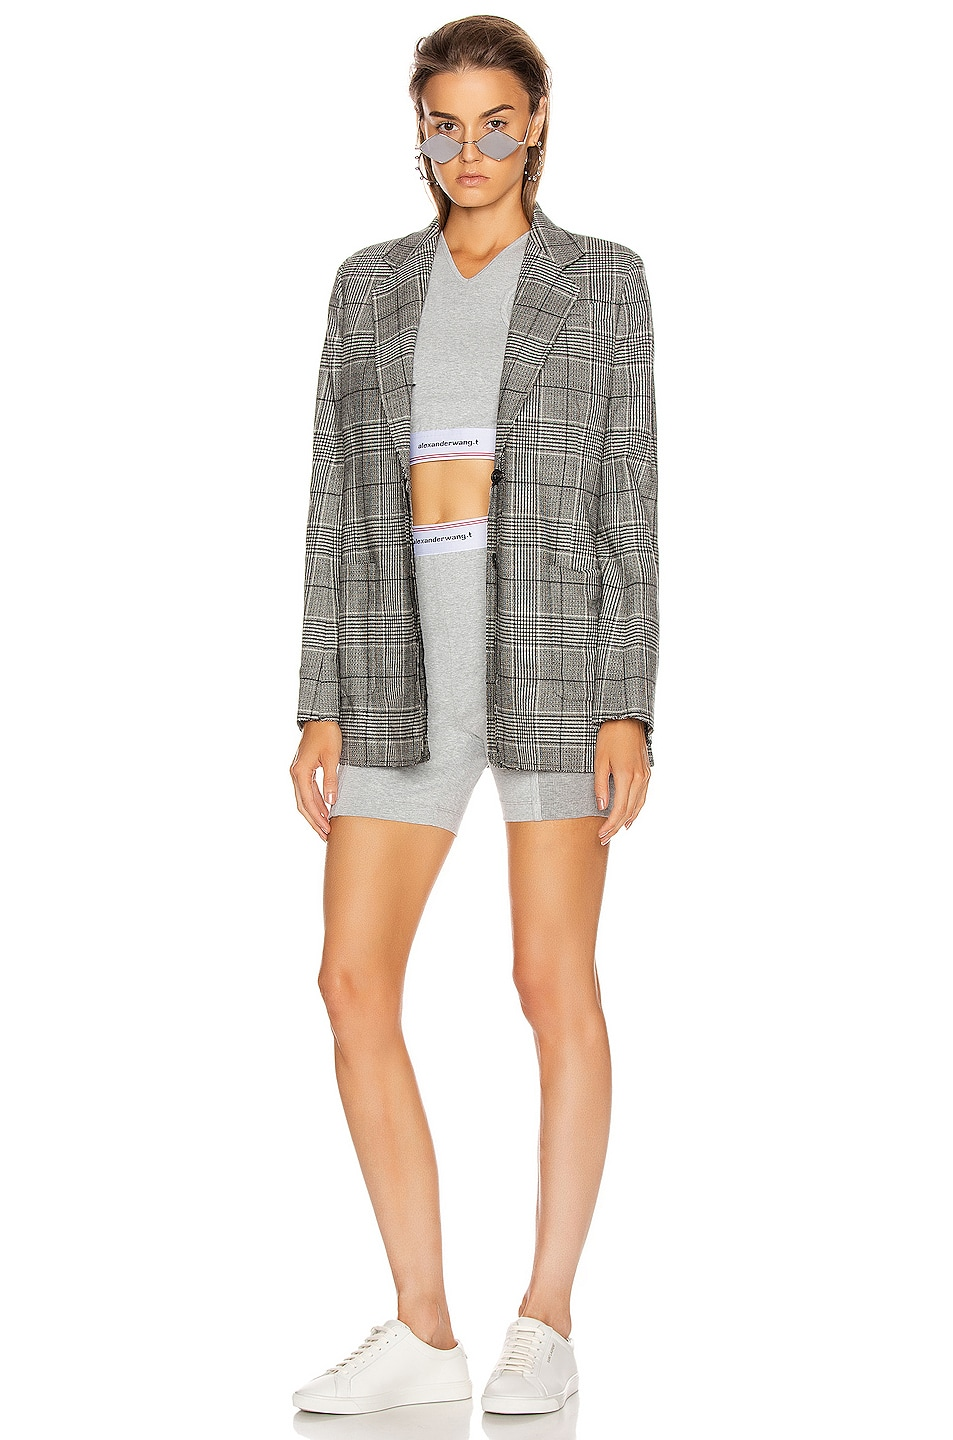 Image 4 of T by Alexander Wang Wash and Go Rib Biker Shorts in Heather Grey